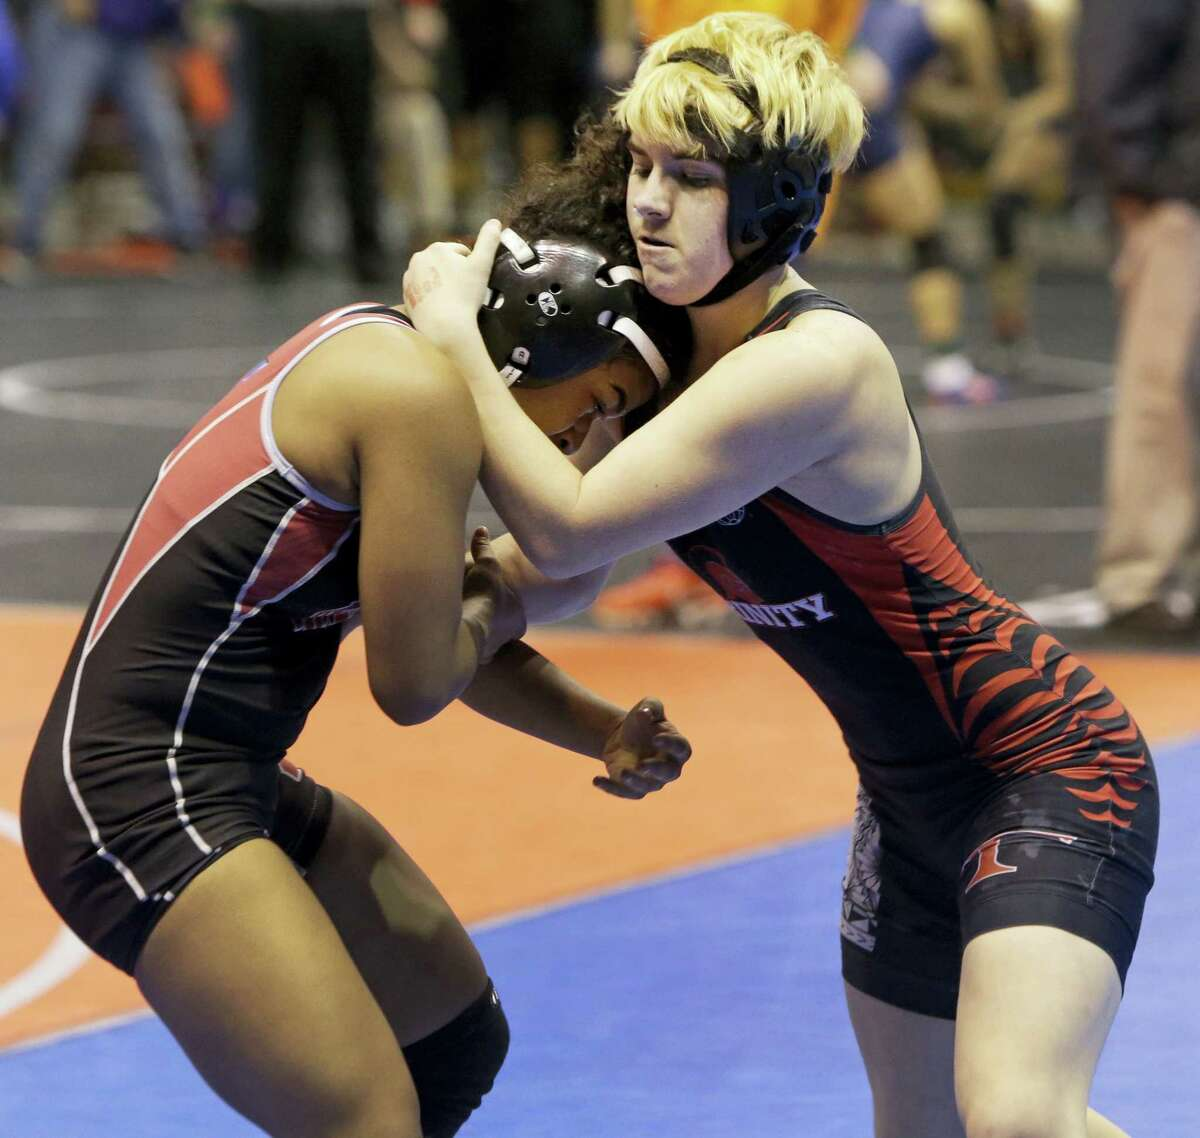 In this Friday, Feb. 24, 2017 photo, Mack Beggs, right, a transgender wrestler from Euless Trinity, competes in a quarterfinal against Mya Engert of Amarillo Tascosa during the state wrestling tournament in Cypress, Texas. Beggs, who won a girls wrestling state title in Texas, says he would compete against boys if allowed and is taking lower doses of testosterone to try to be fair to his opponents.